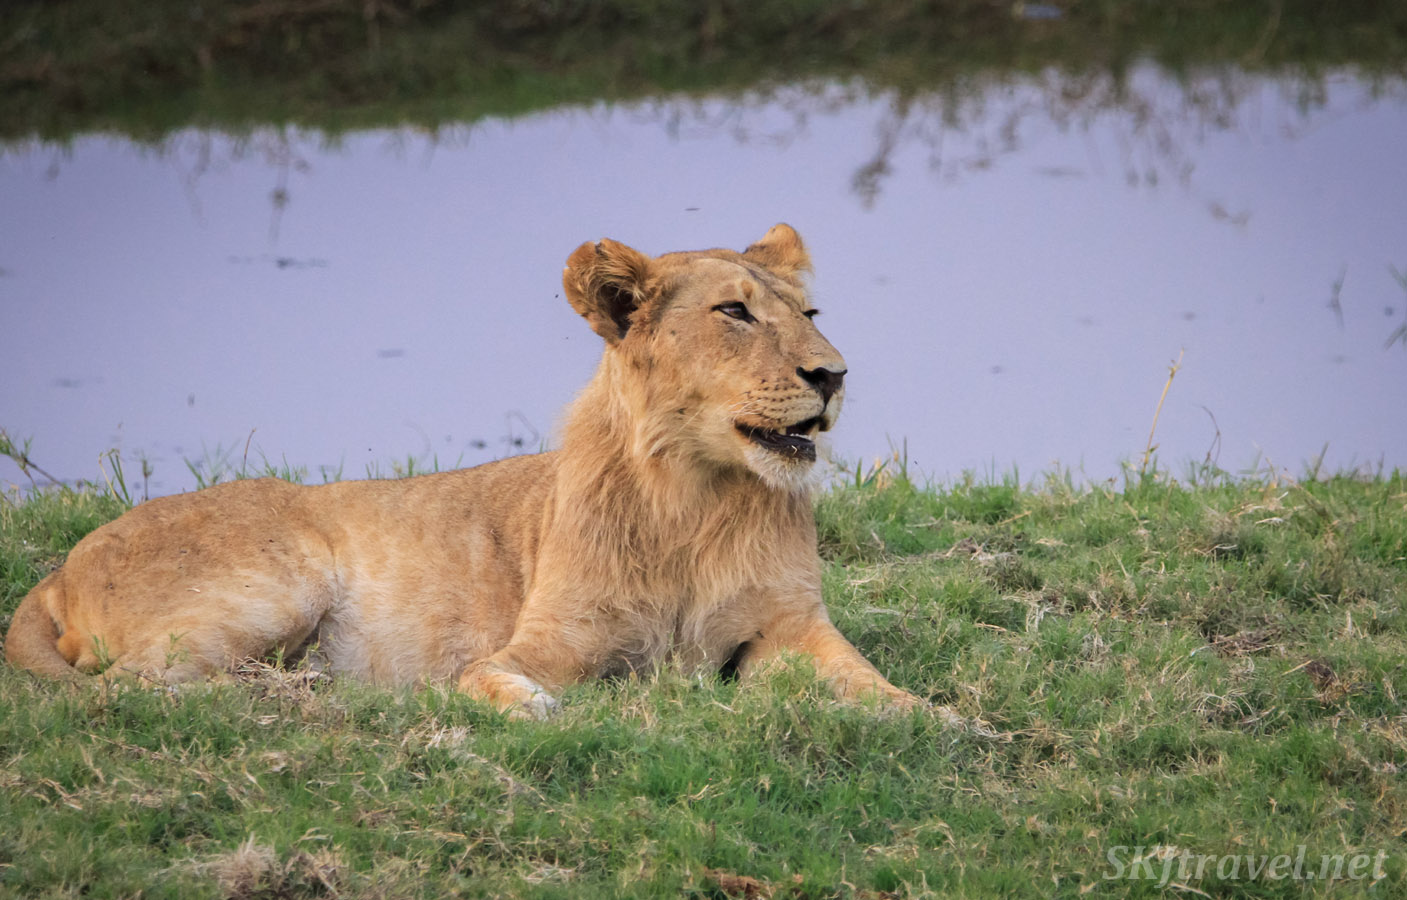 Young lion at the water's edge, Chobe National Park in the Caprivi Strip across from Namibia.